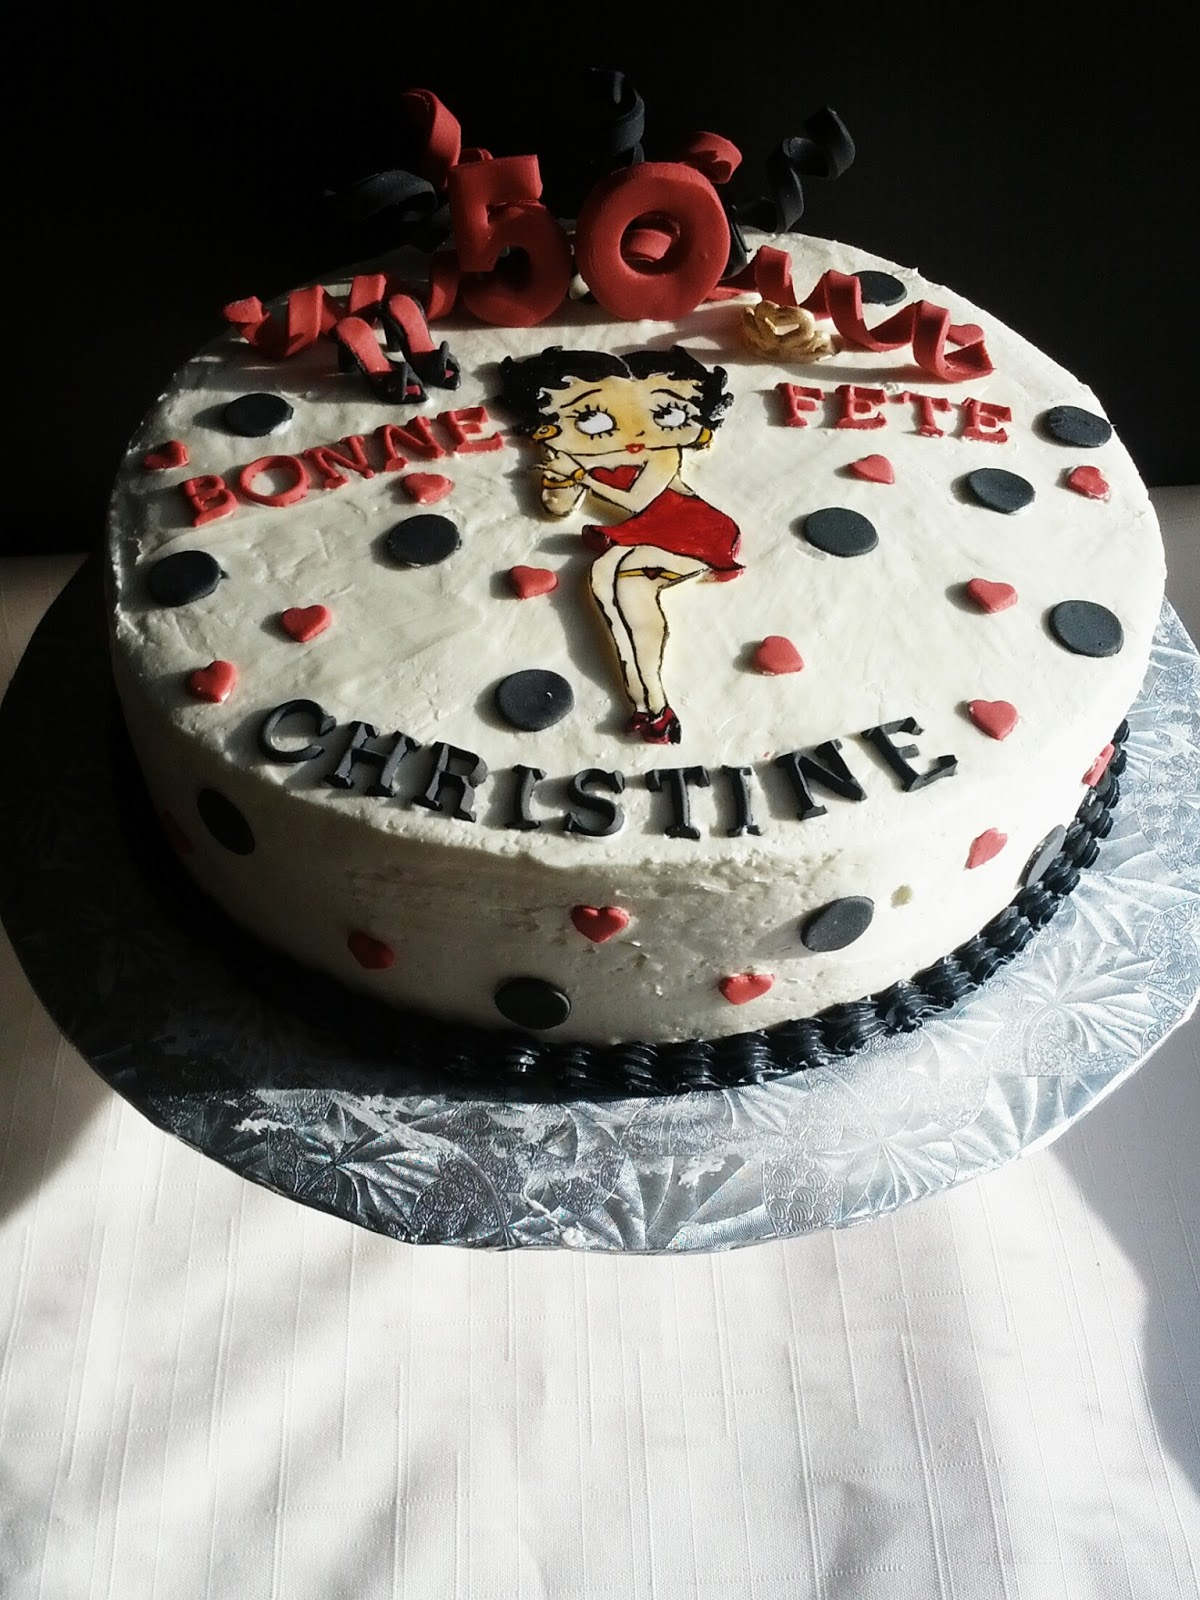 Second Generation Cake Design Betty Boop 50th Birthday Cake